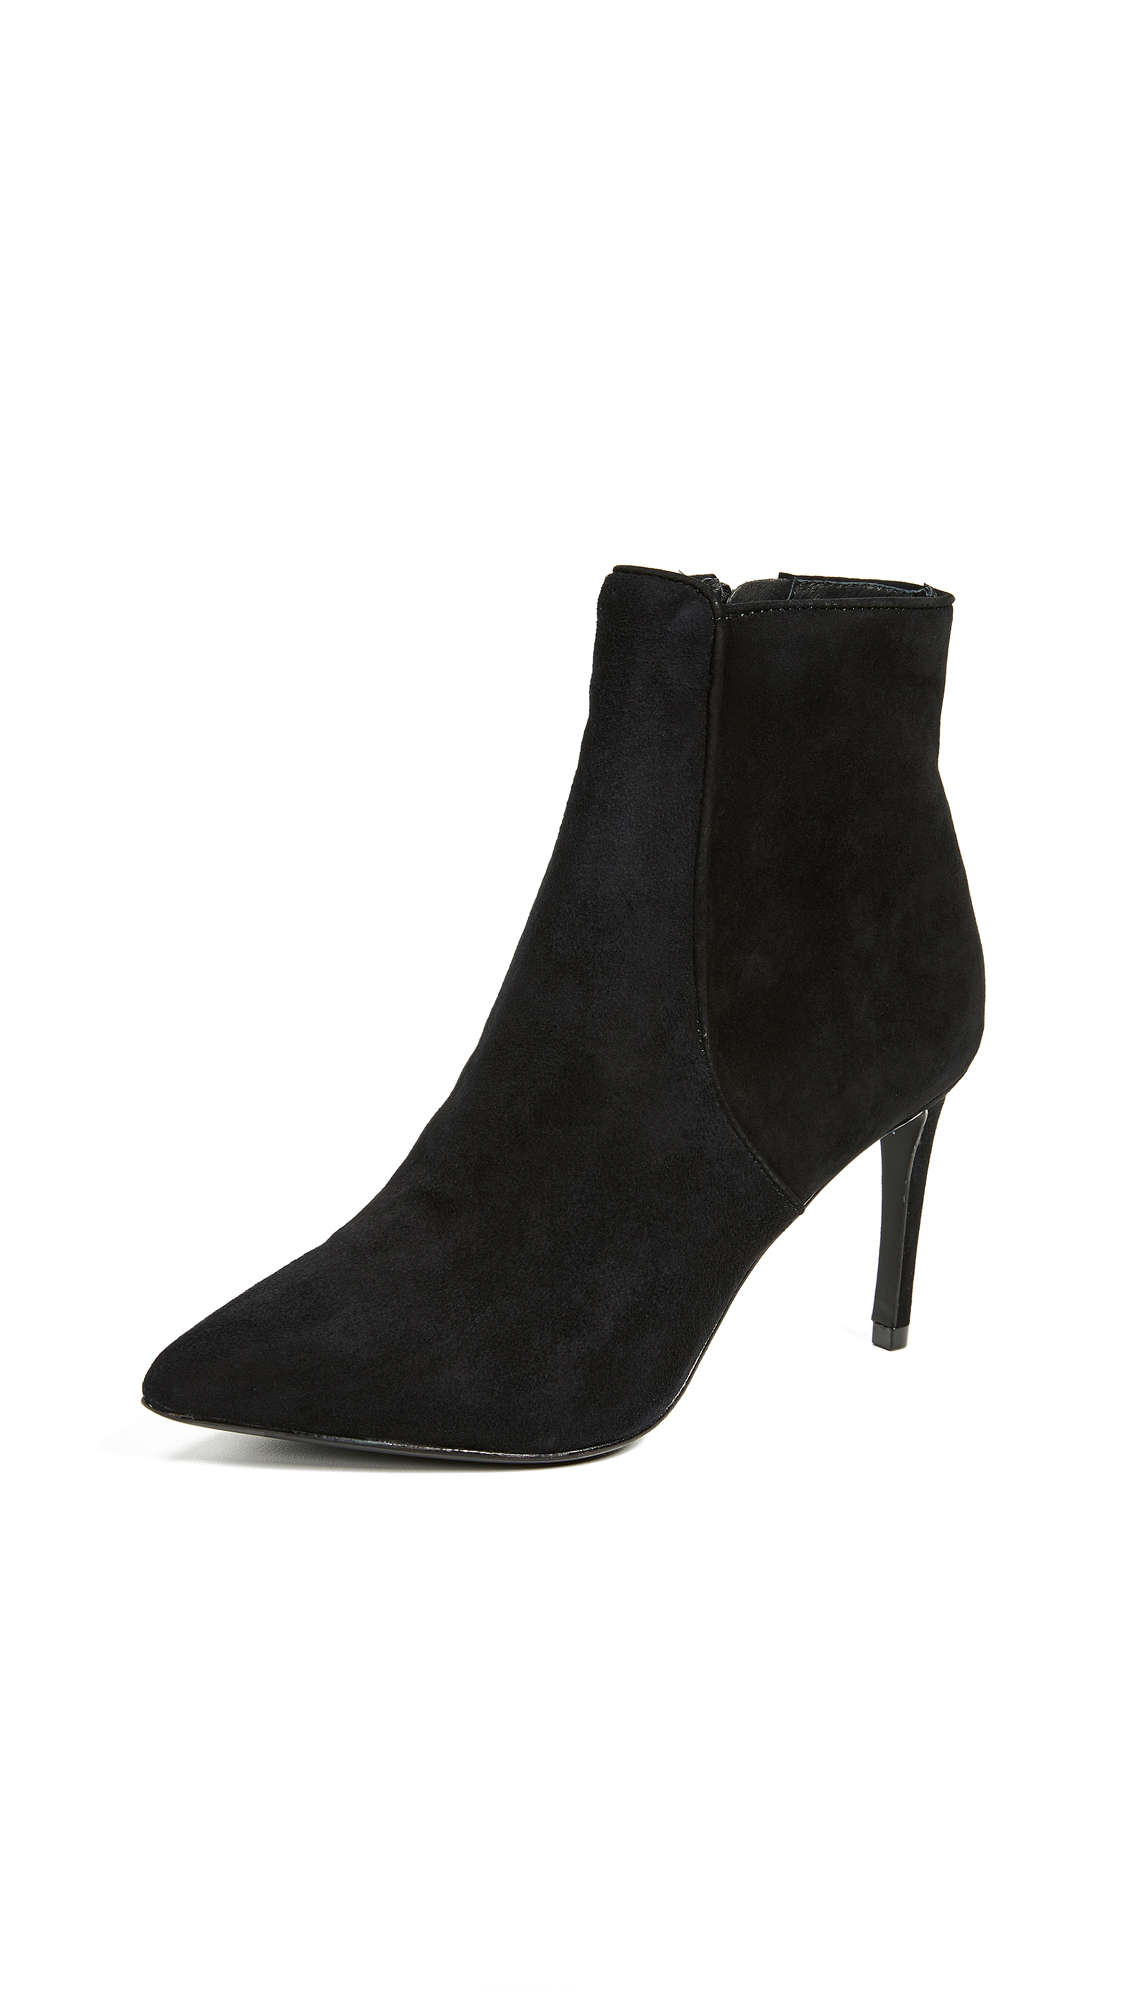 Rachel Zoe Morgan Point Toe Booties